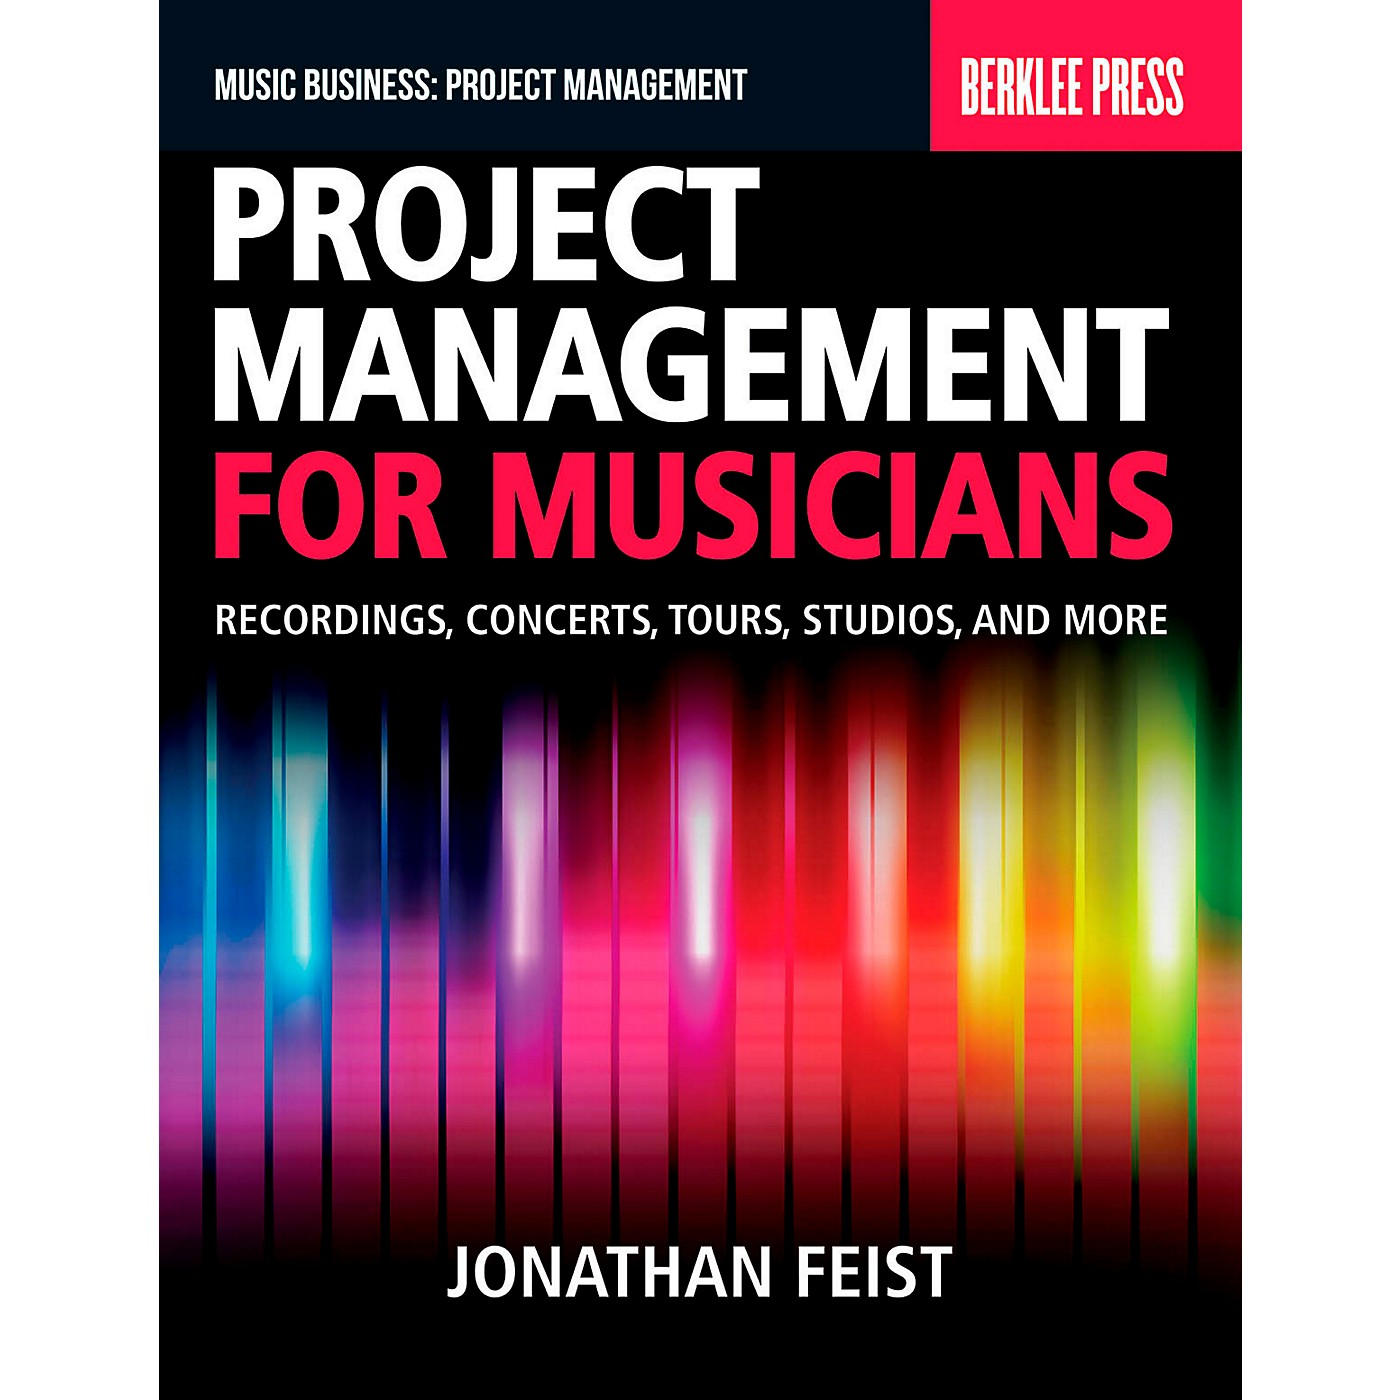 Berklee Press Project Management For Musicians - Recordings, Concerts, Tours, Studios & More thumbnail